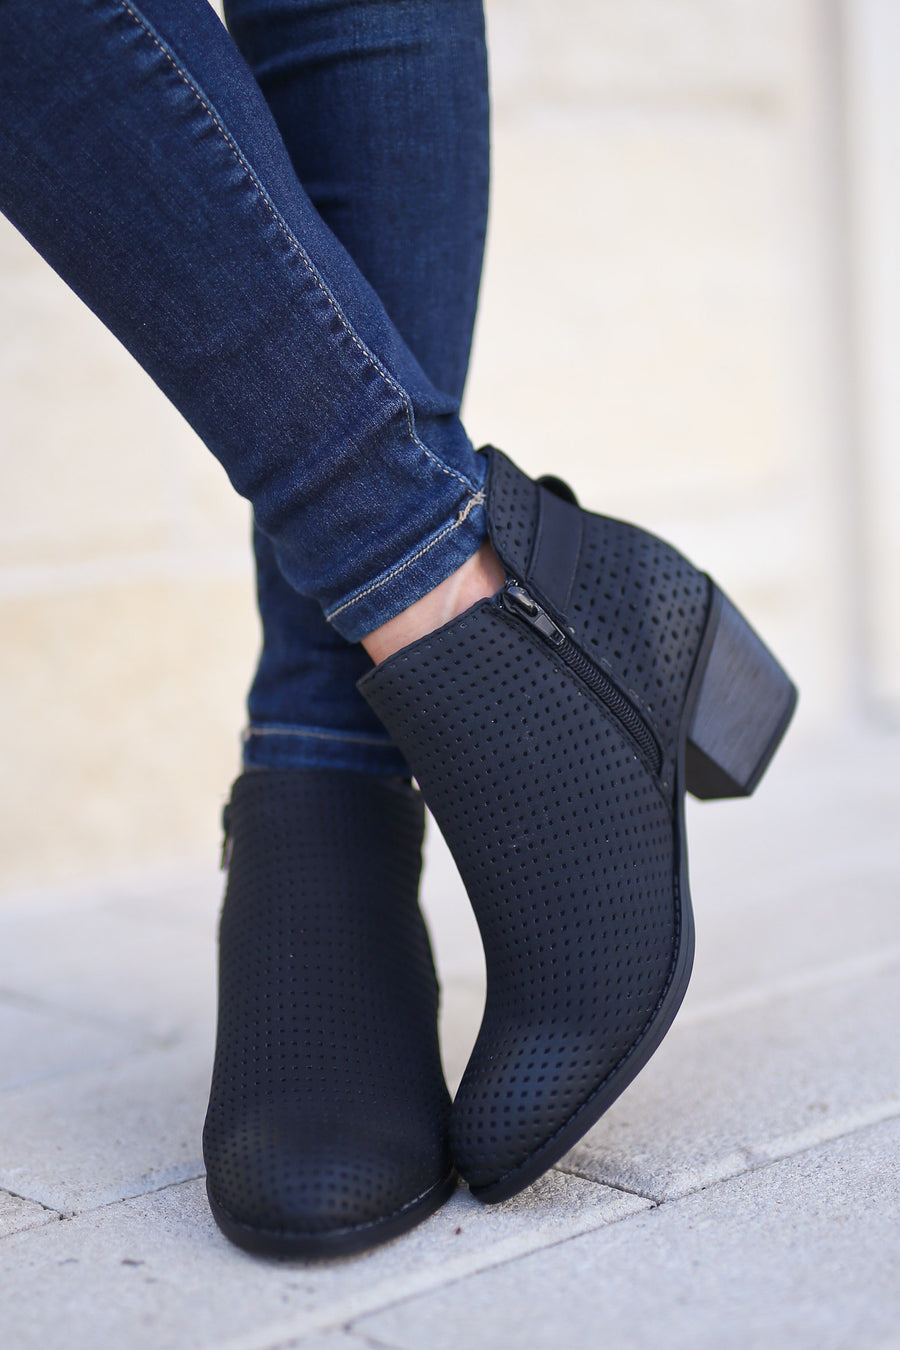 Davina Booties - Black perforated, trendy ankle booties, cute buckle detail, closet candy boutique 1